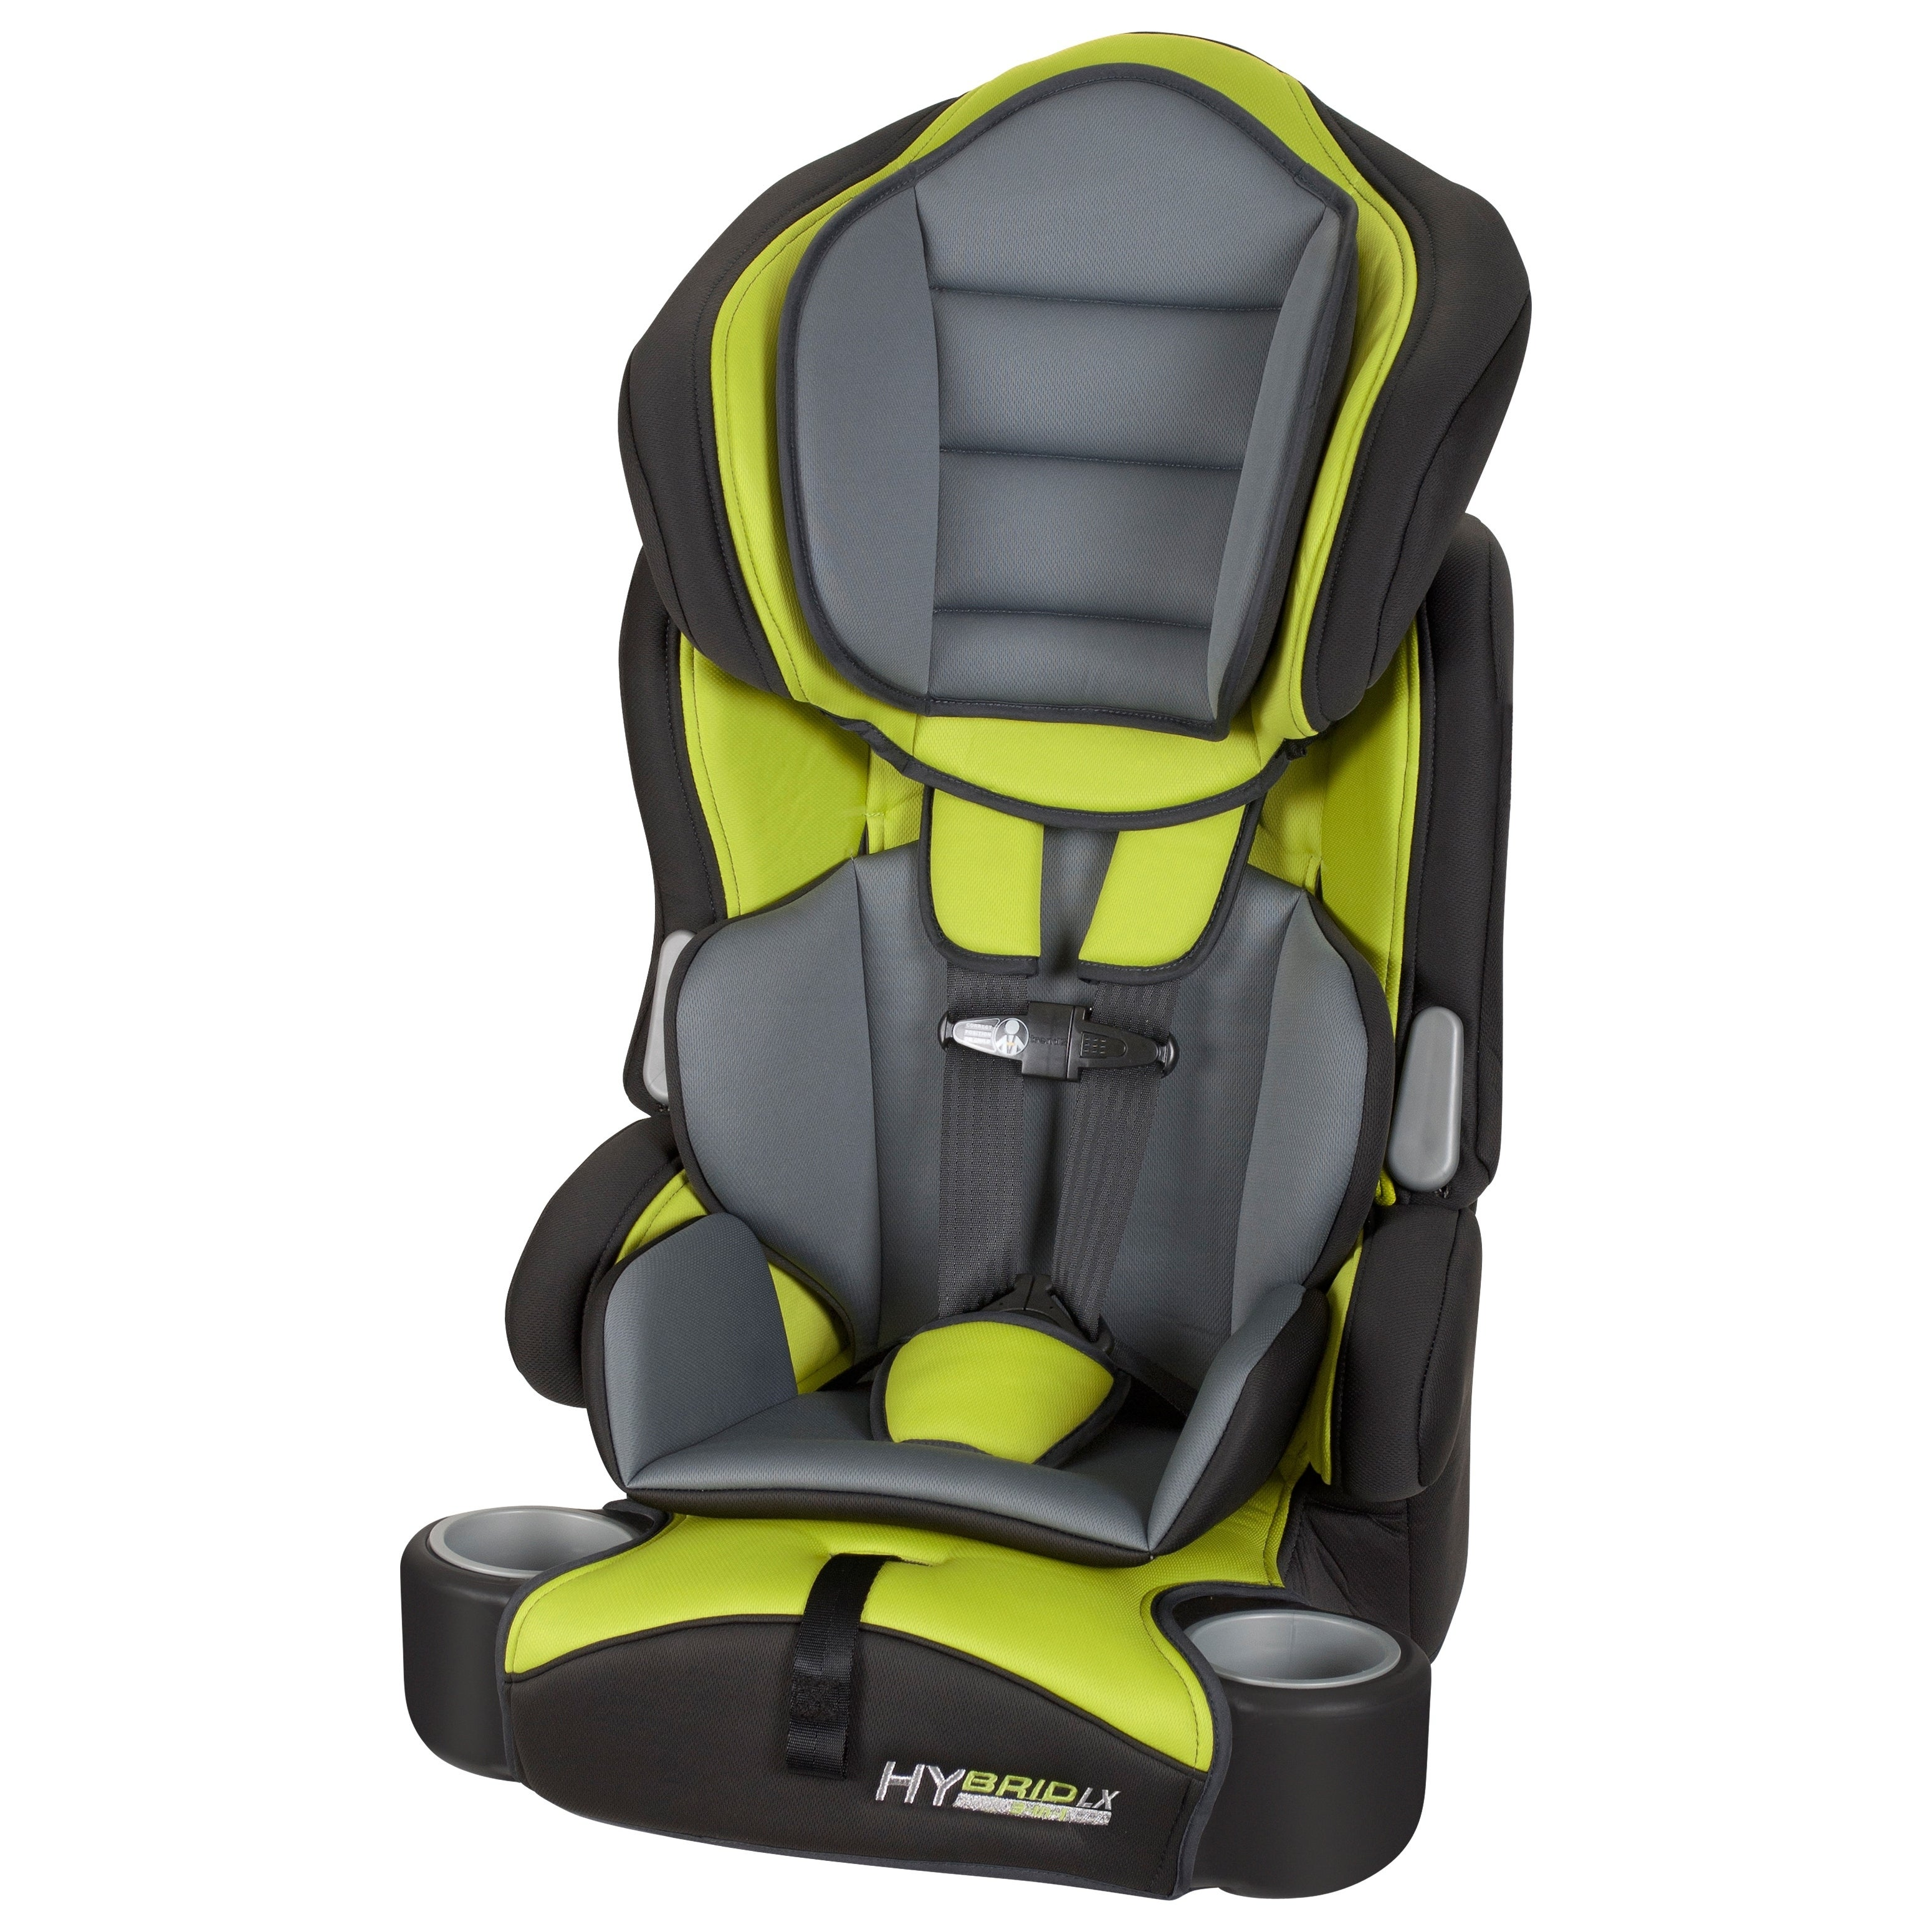 Shop Baby Trend Hybrid 3 In 1 Booster Car SeatKiwi